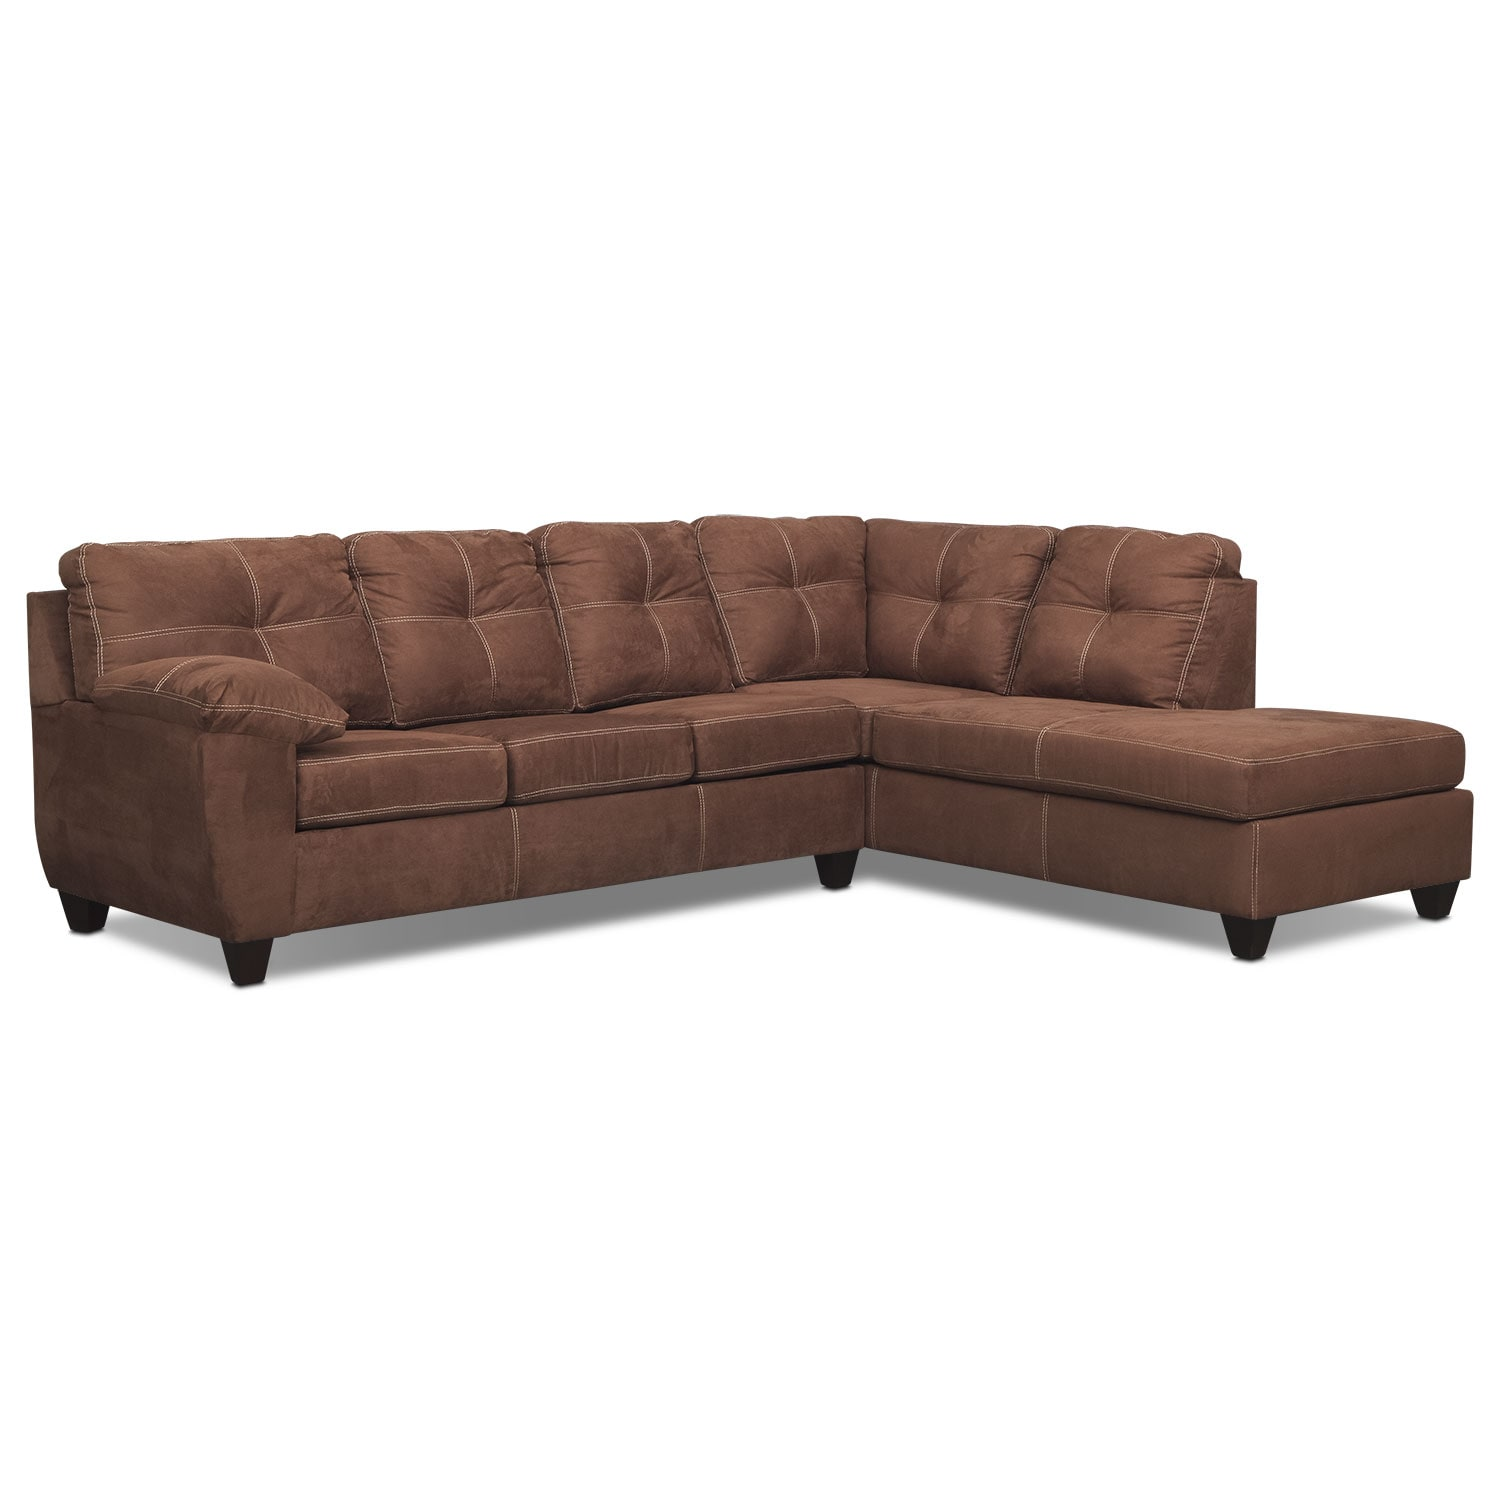 Rialto 2-Piece Sectional with Right-Facing Chaise - Coffee